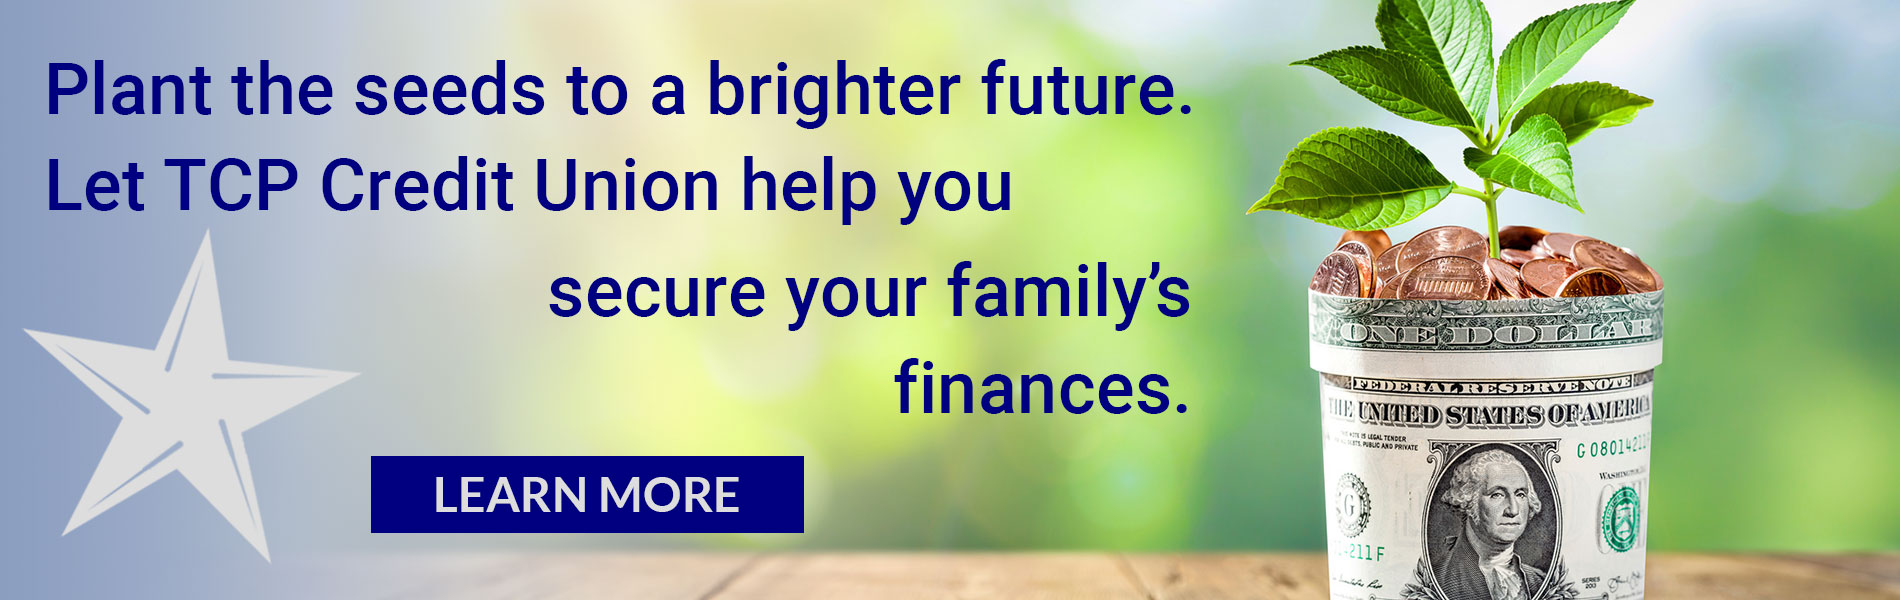 Plant the seeds to a brighter future. Let TCP Credit Union help you secure your family's finances. Learn More